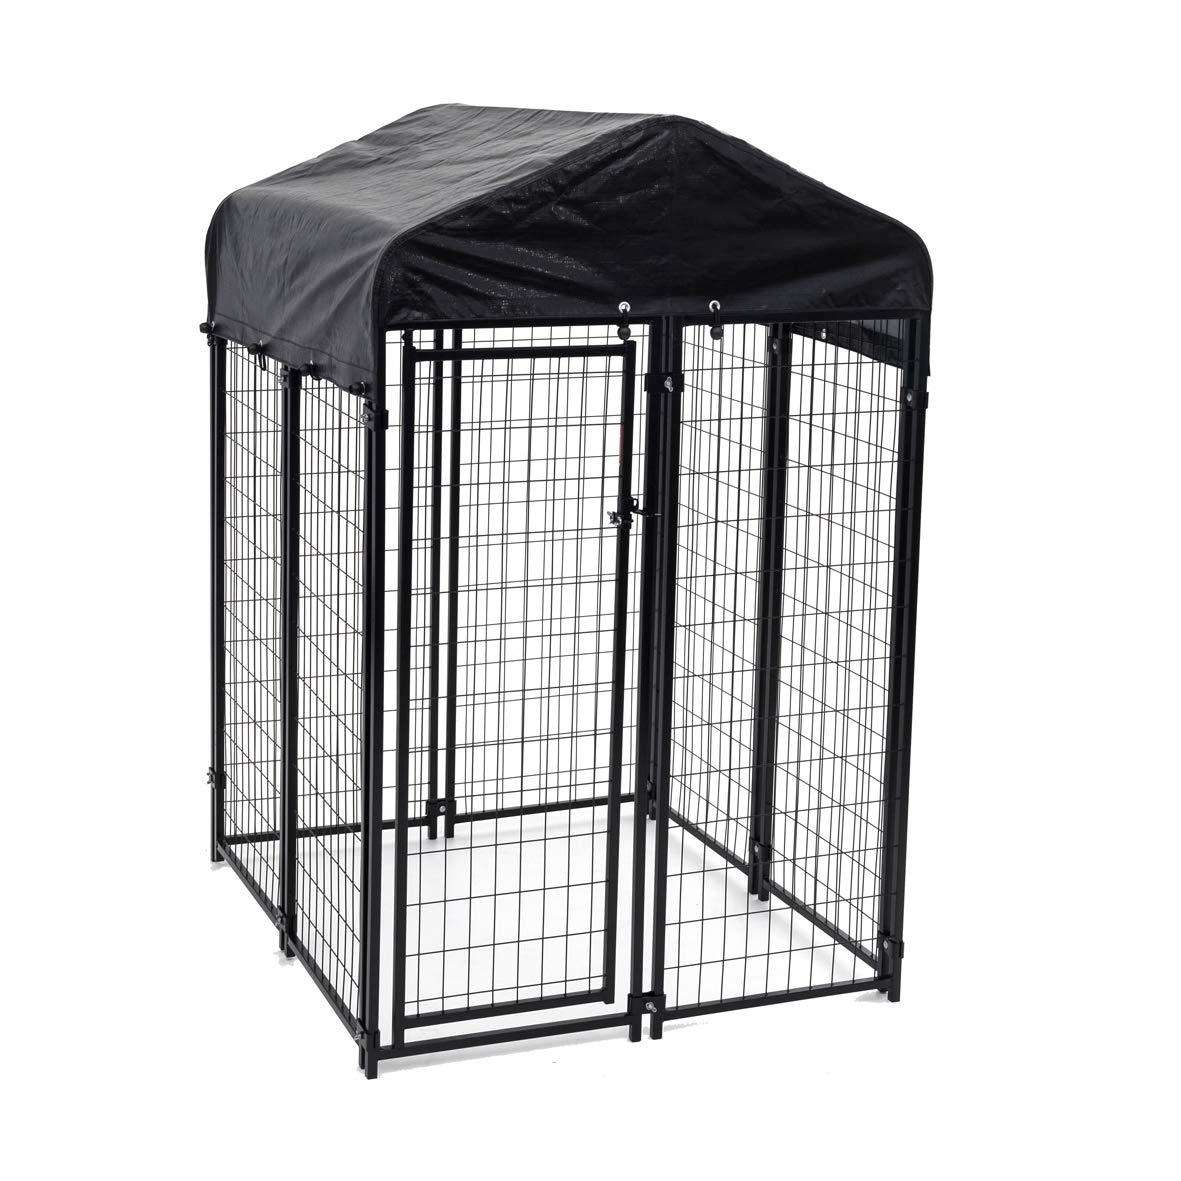 large modular outdoor garden yard connected enclosed welded wire mesh fencing panels dog kennel with cover